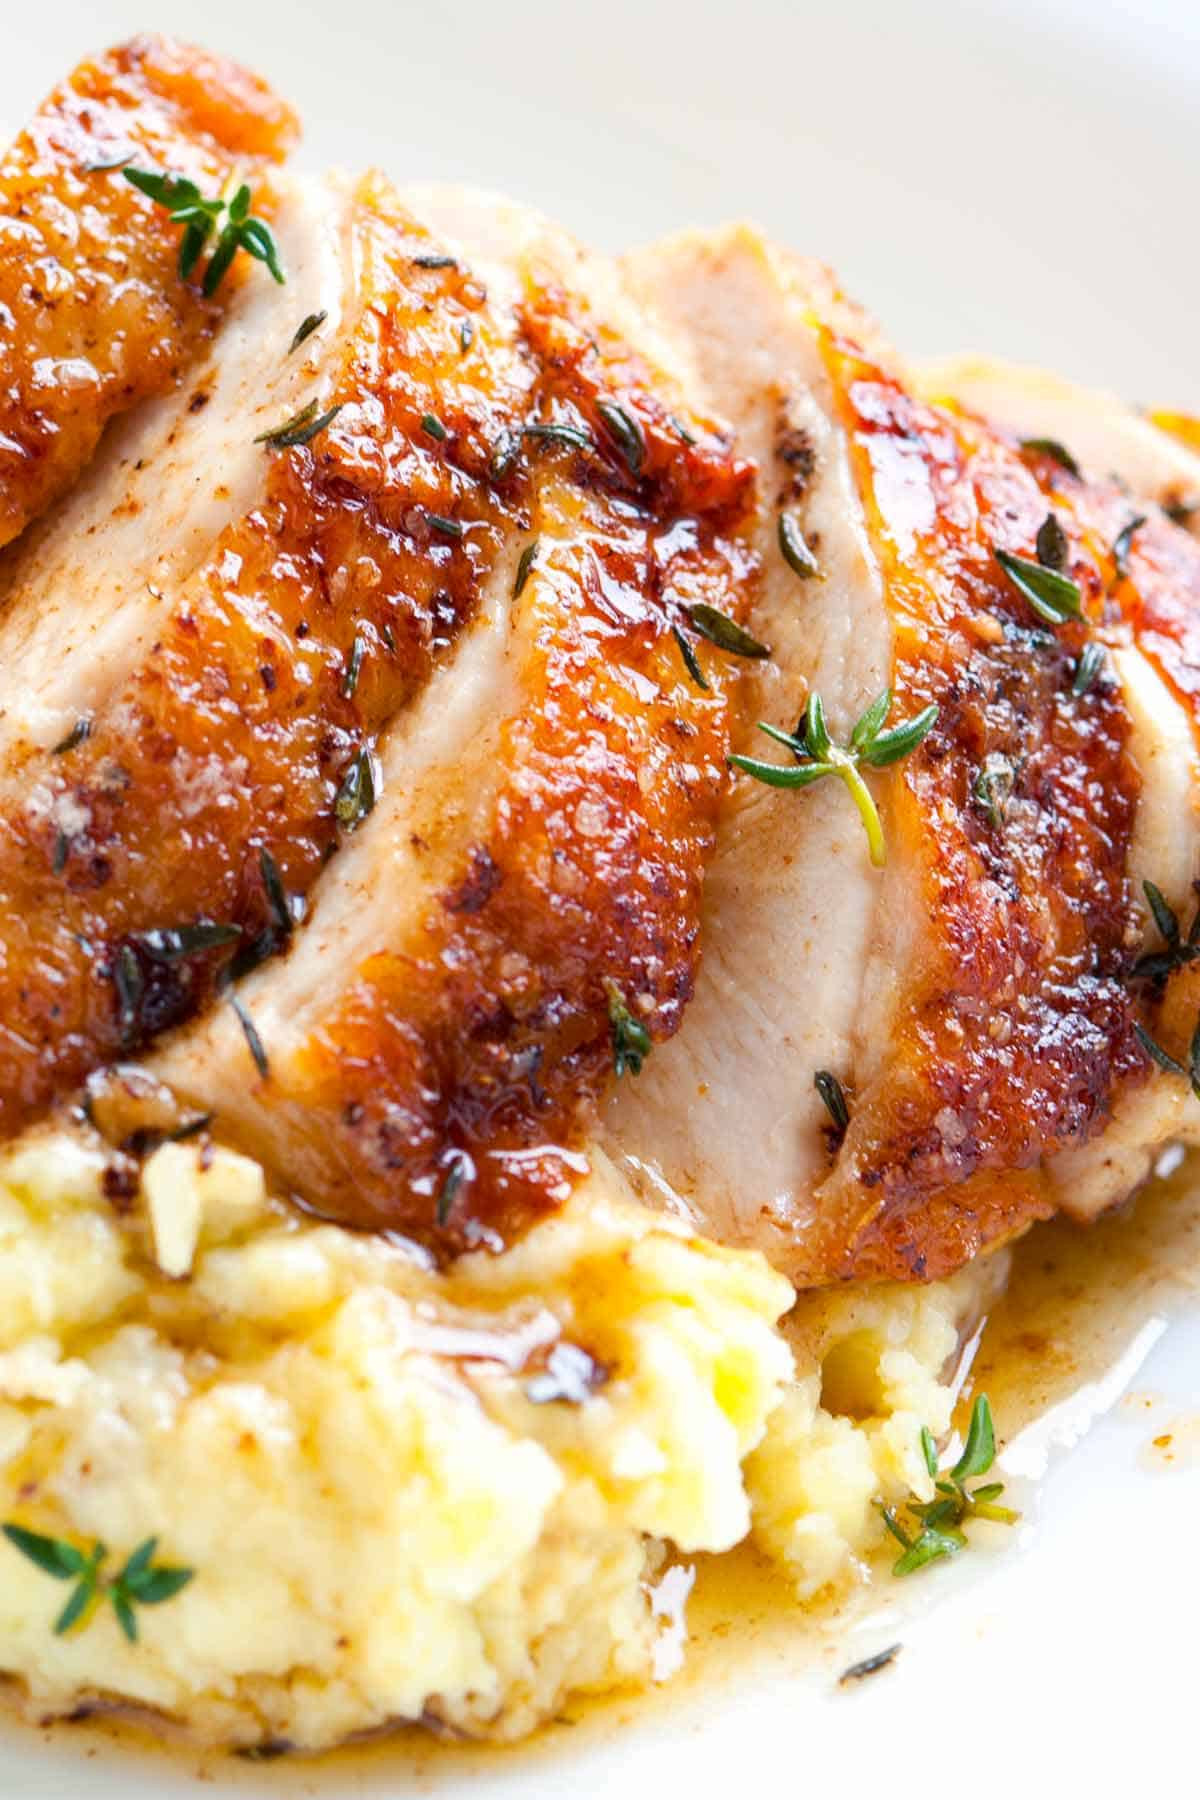 Roasted Chicken Breasts  Easy Pan Roasted Chicken Breasts with Thyme